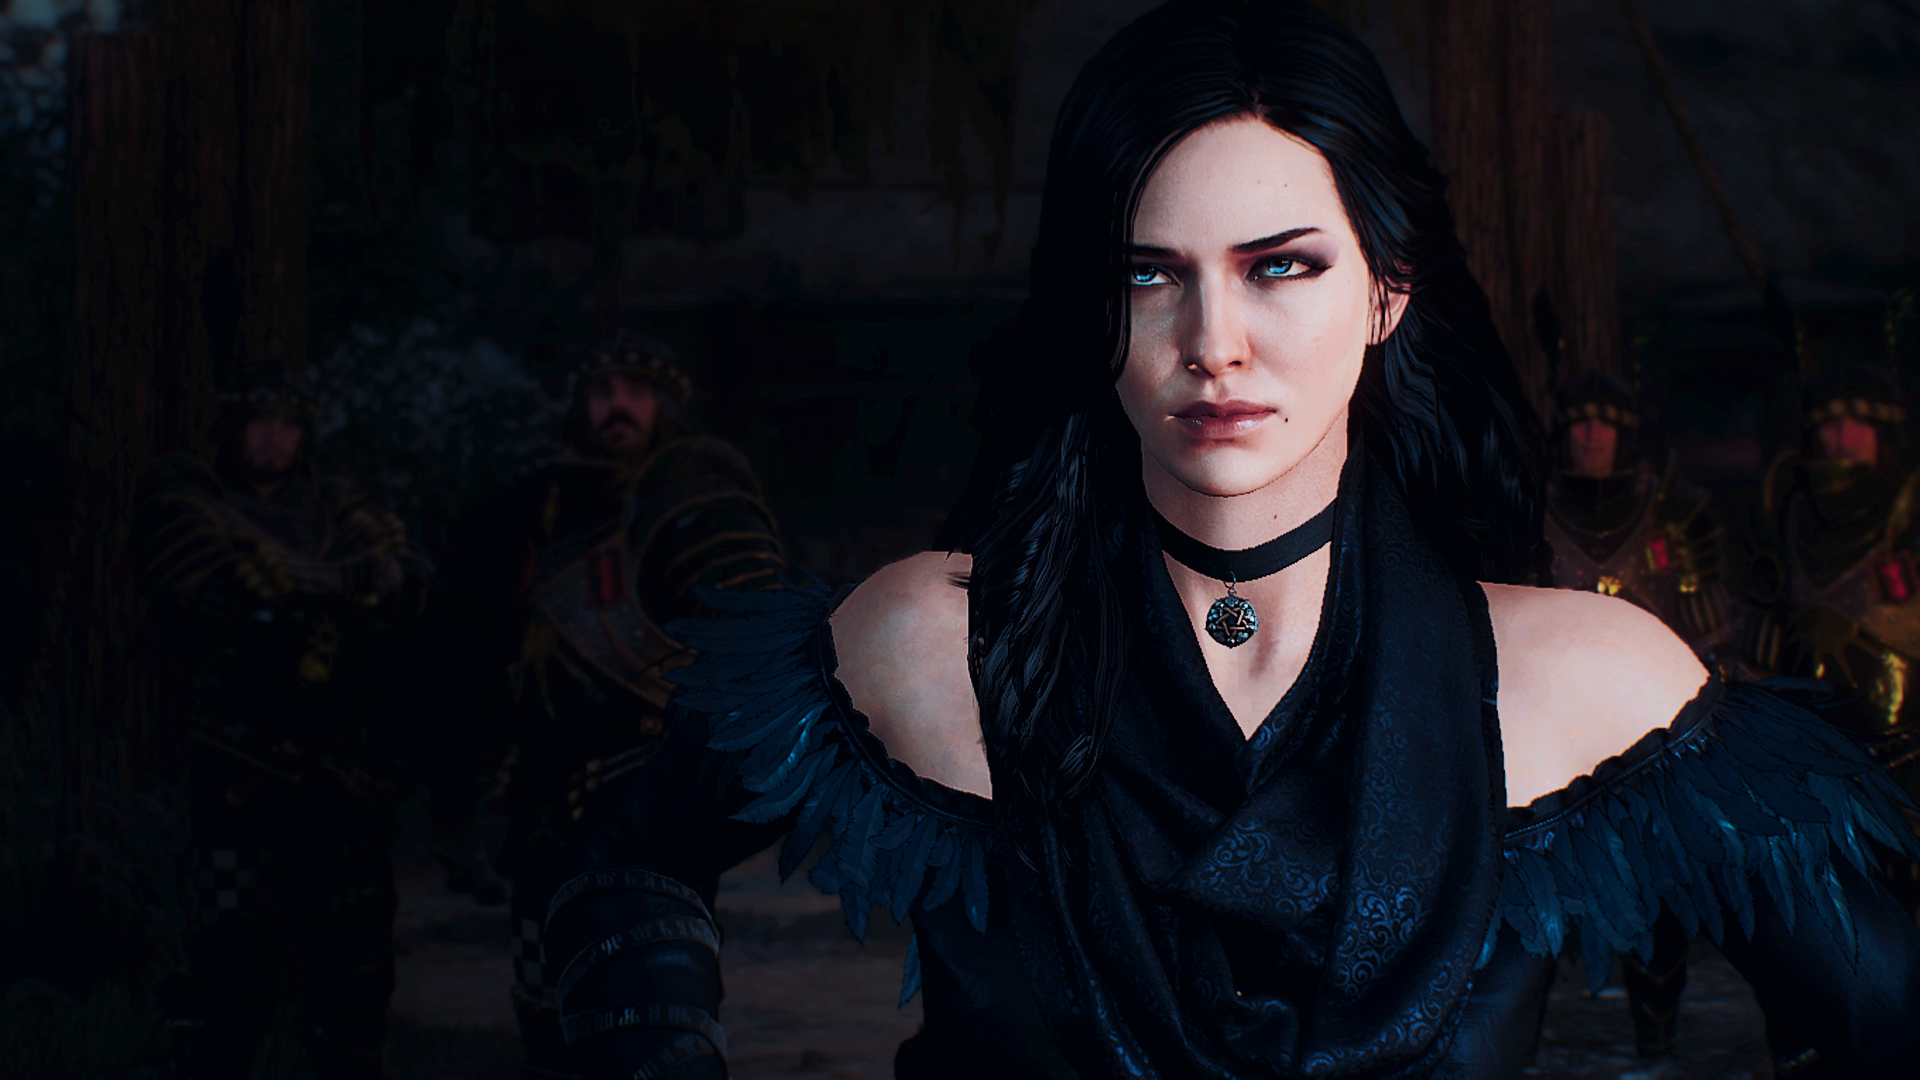 General 1920x1080 Video Games The Witcher 3 Wild Hunt Yennefer Of Vengerberg The Witcher The Witcher 3 The Last Wish